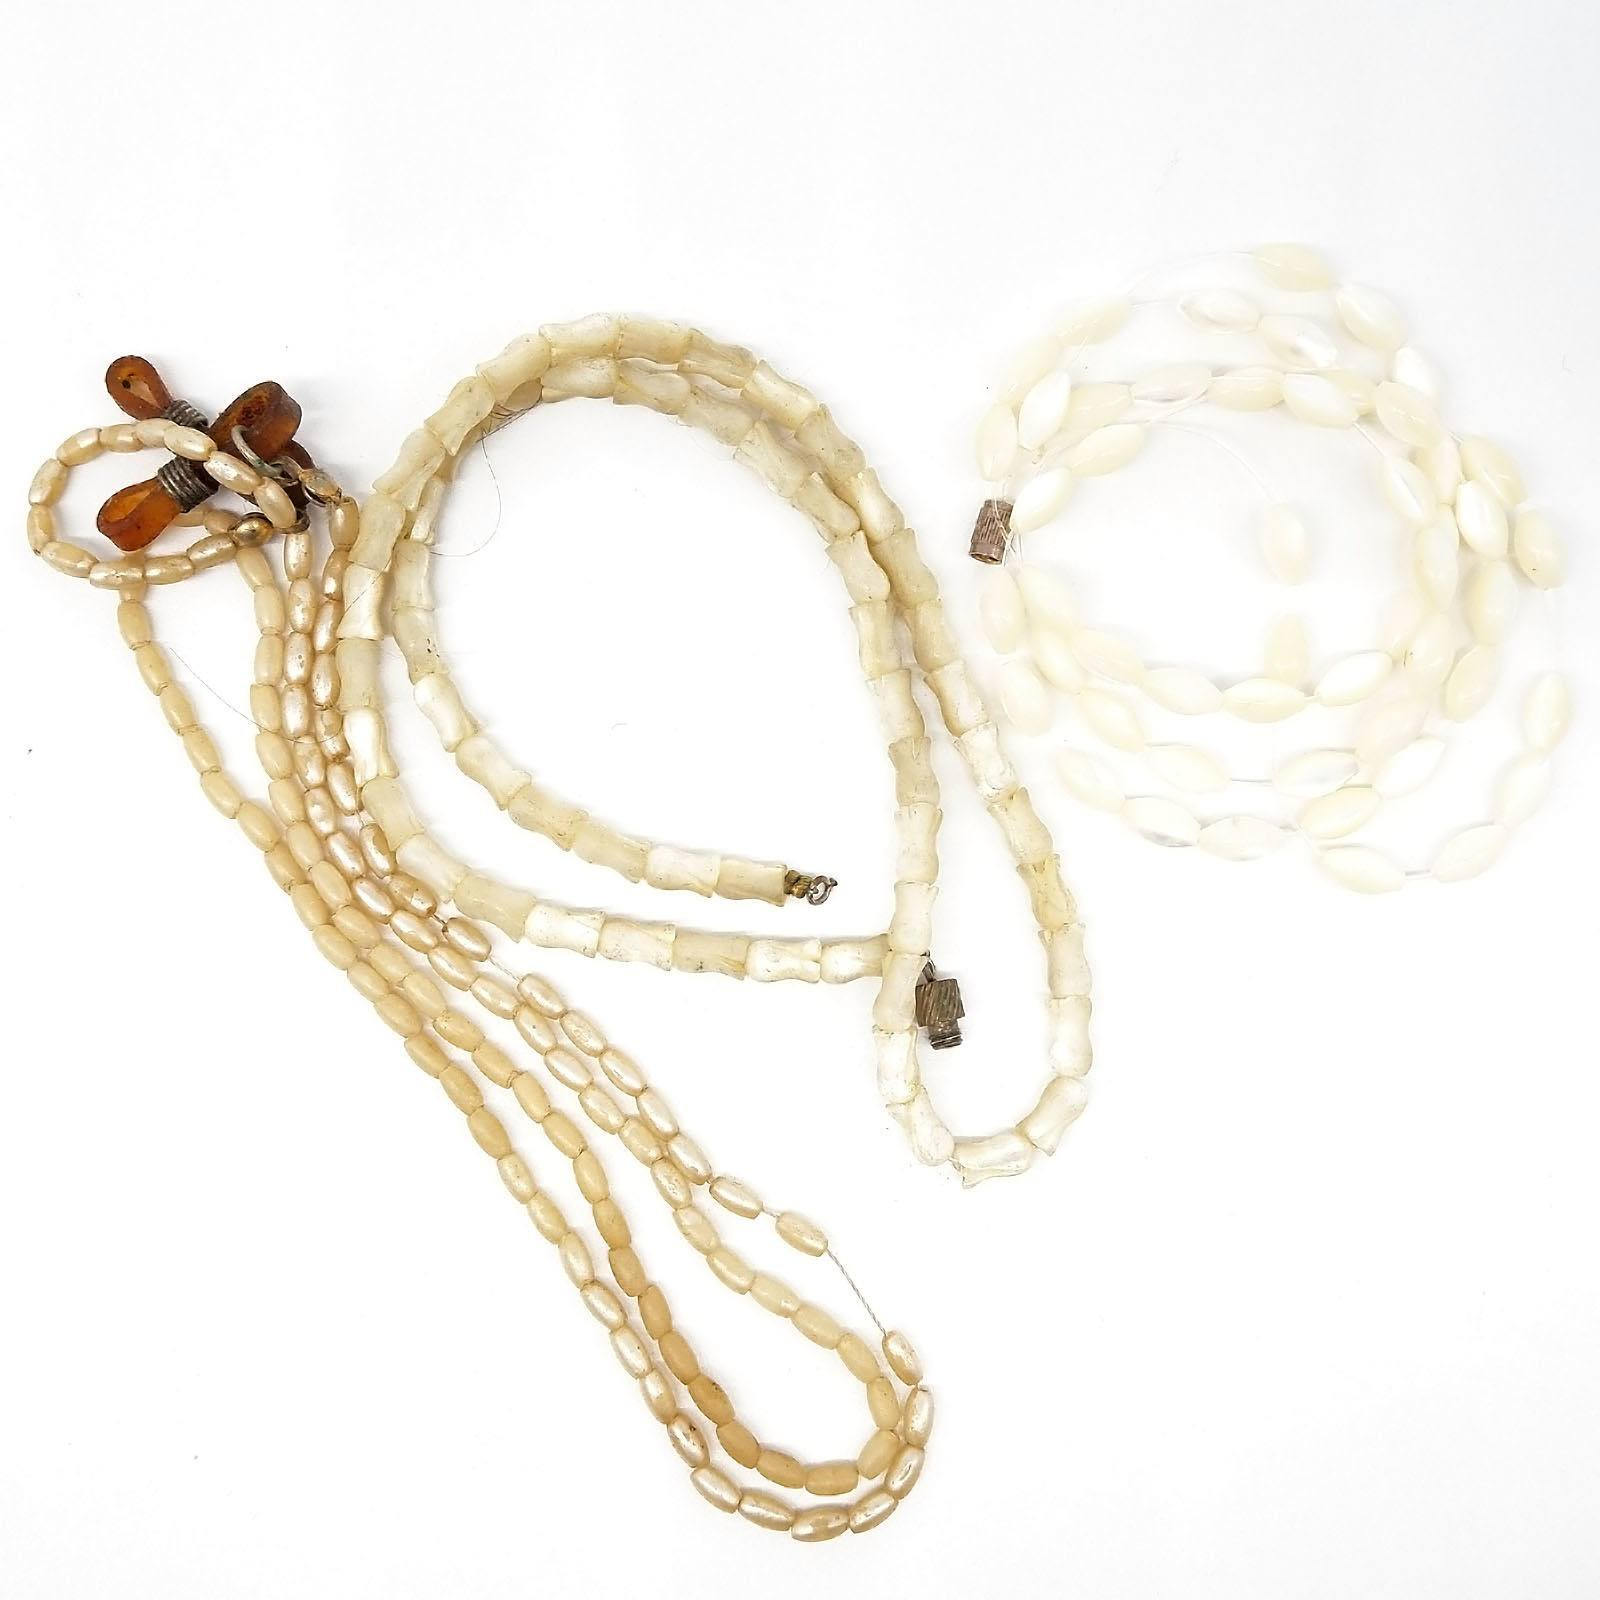 'Three Strands of Mother of Pearl Beads'